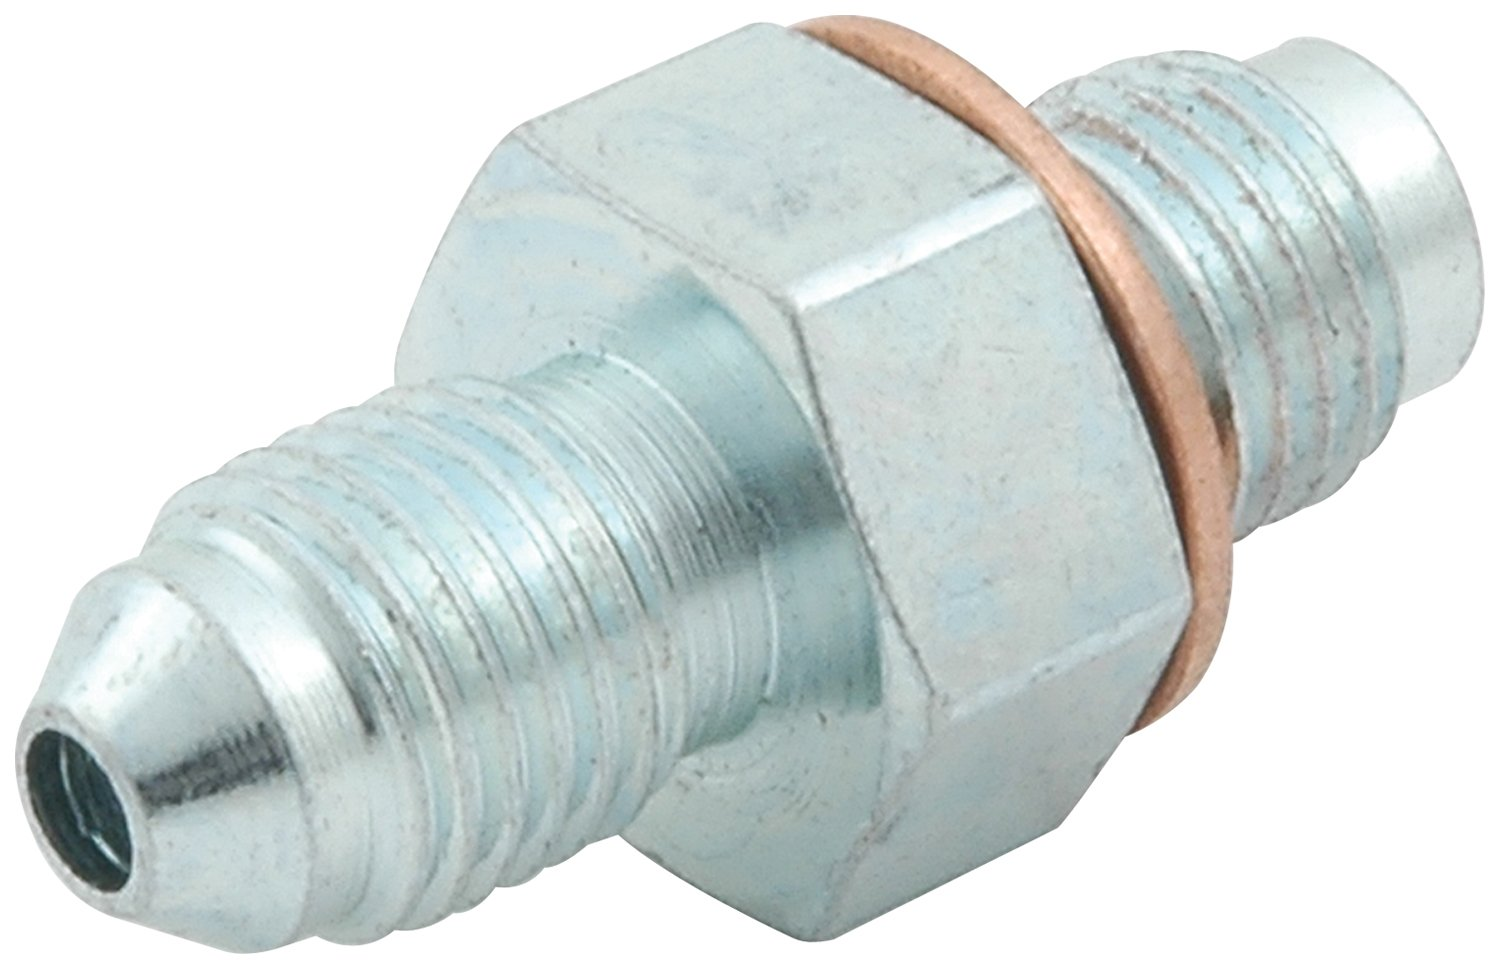 Allstar Performance ALL50029-3 to 3/8' -24 Adapter Fitting with Washer